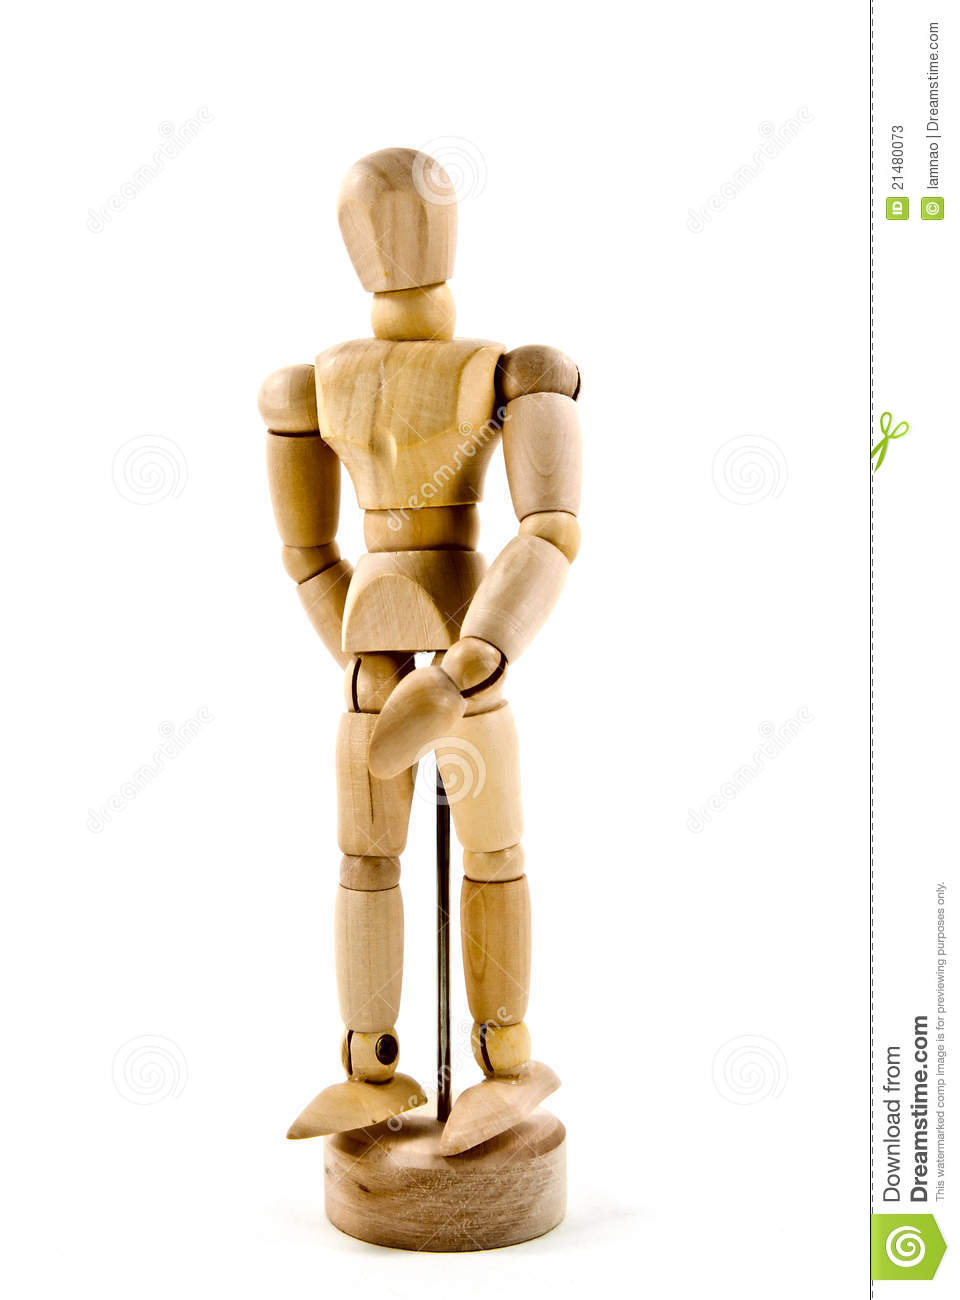 wooden action figure for drawing mr no pr no 0 837 0